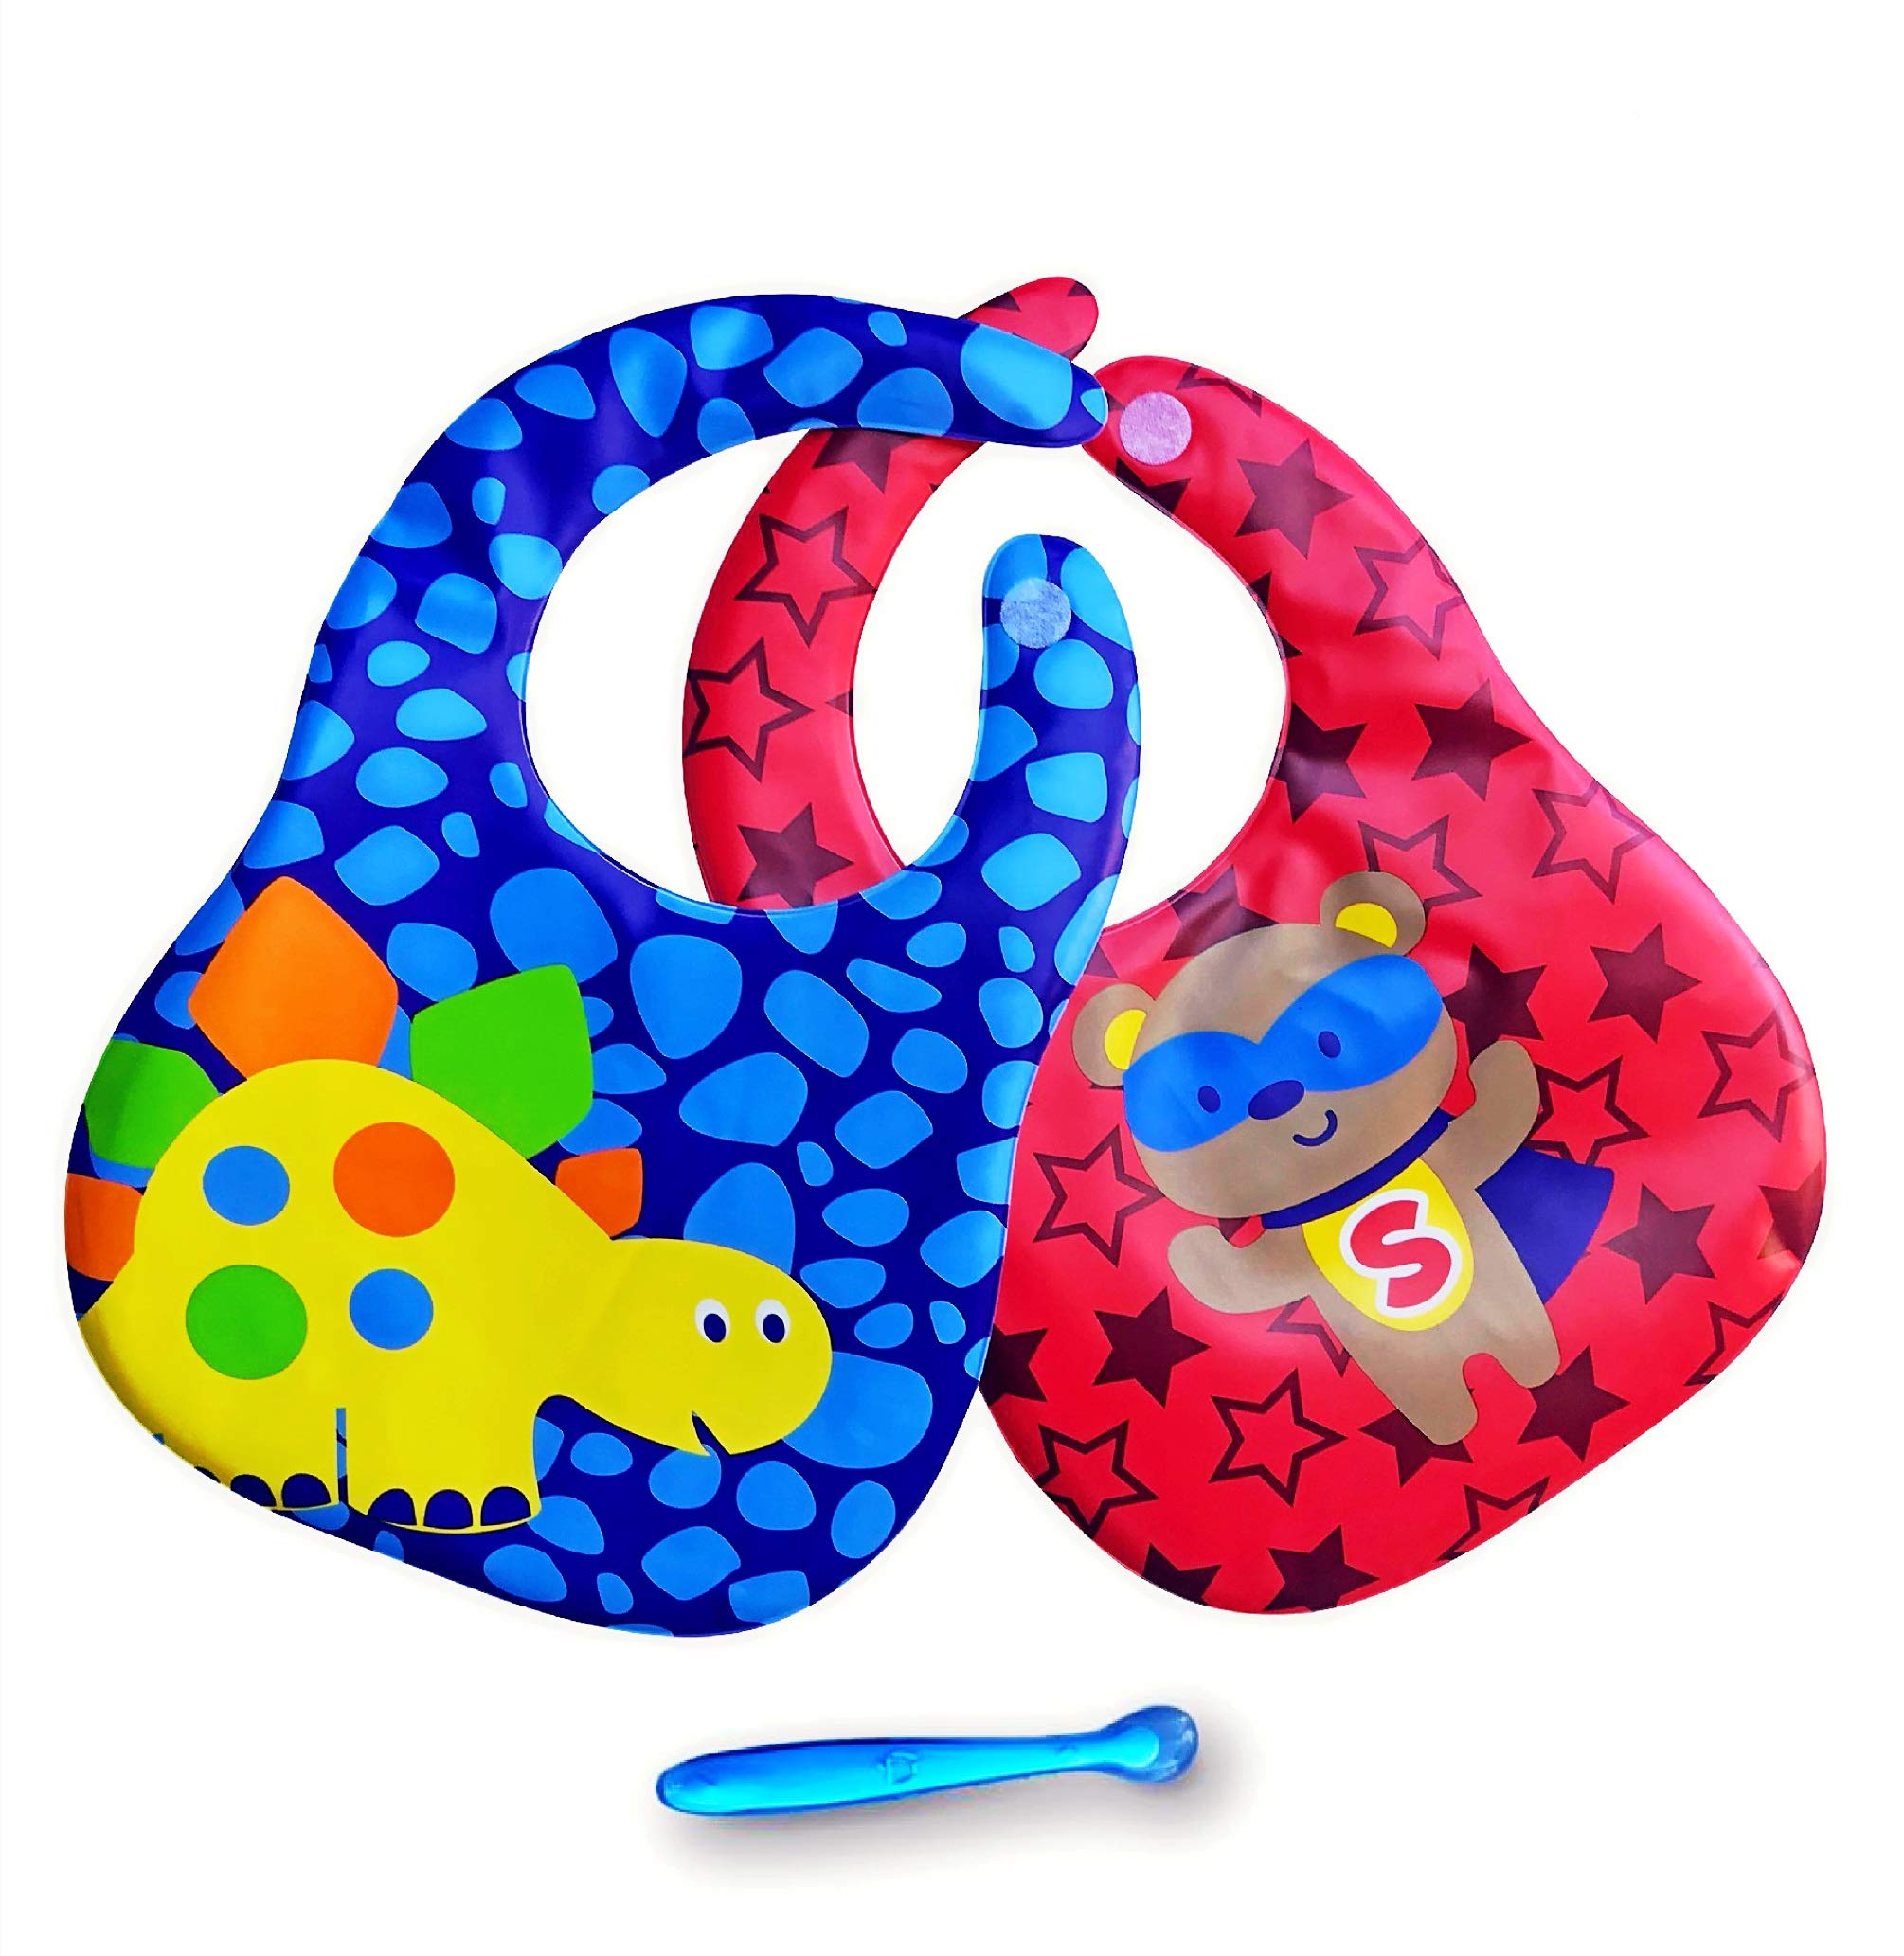 Waterproof Baby Bibs for Boy! Easily Wipes Clean! 2 Pack Two Colors Set (Blue and red)! Comfortable to use! with Bag Trap for Waste Collection! Cute Baby Spoon Included!!